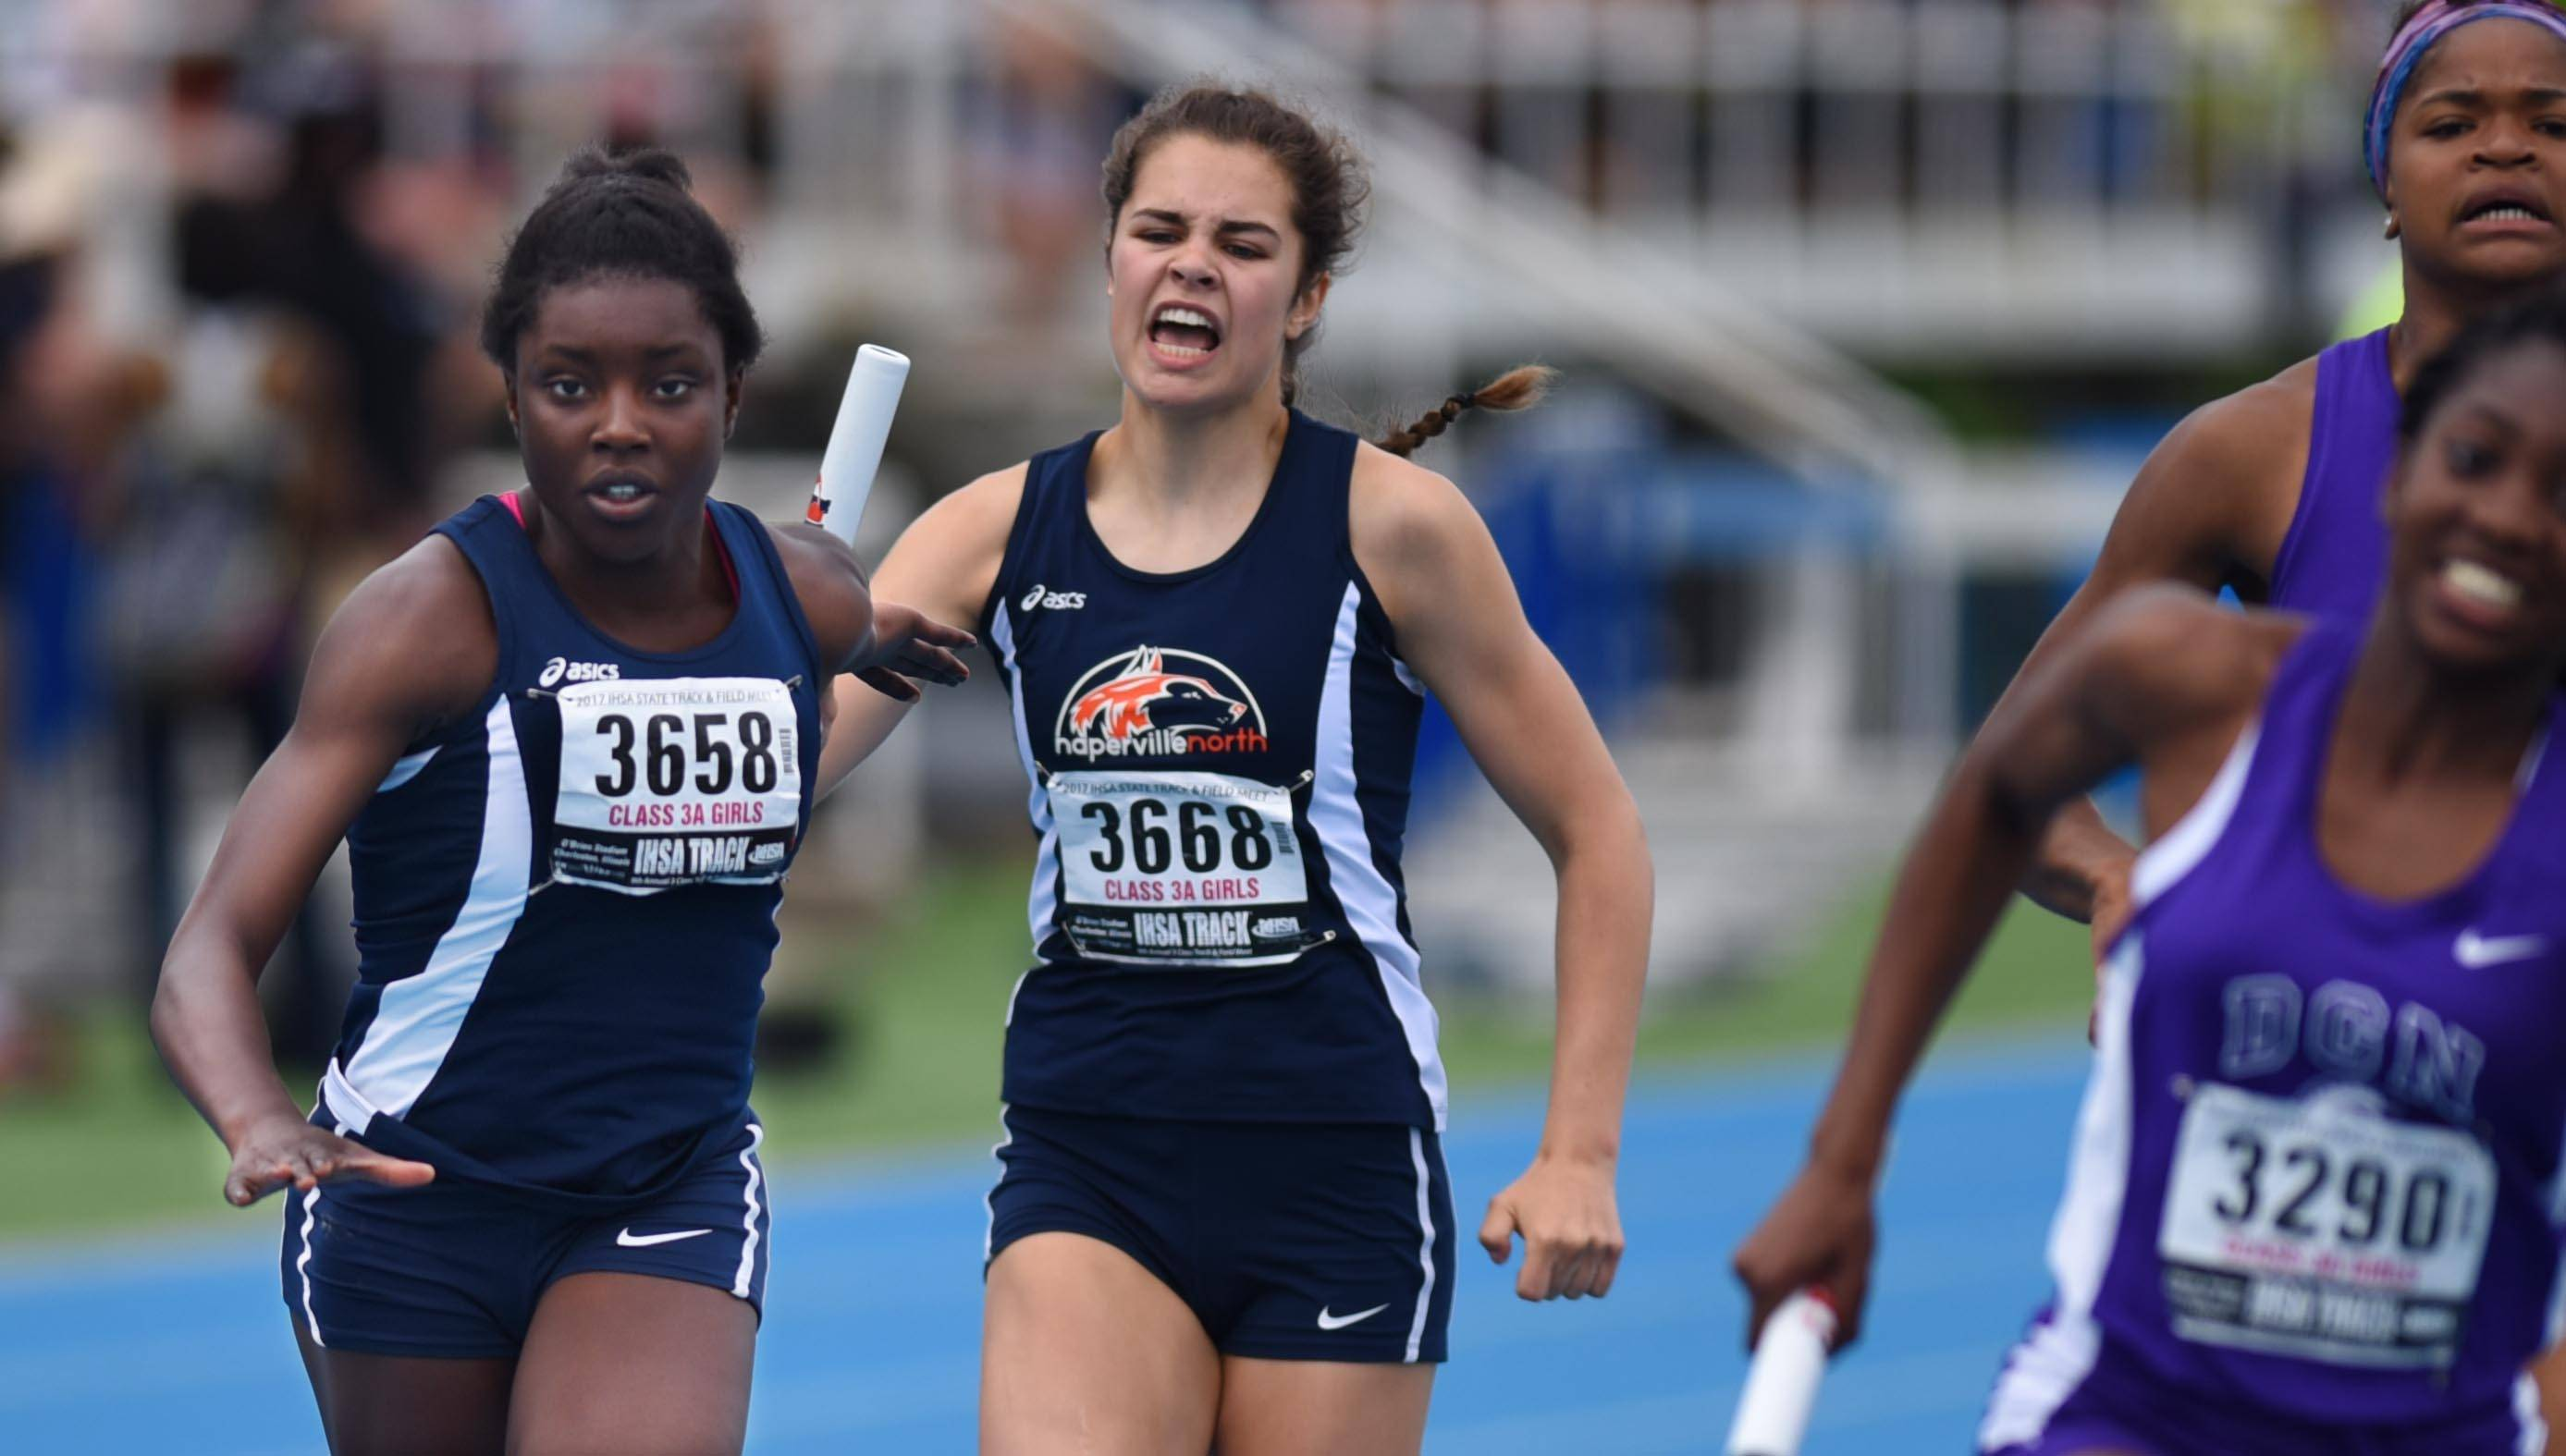 Naperville North's Allison Grady yells and hands the baton to teammate Saffilla Allie in the Class 3A 4x200-Meter Relay at the state girls track and field meet finals on Saturday at Eastern Illinois University in Charleston.